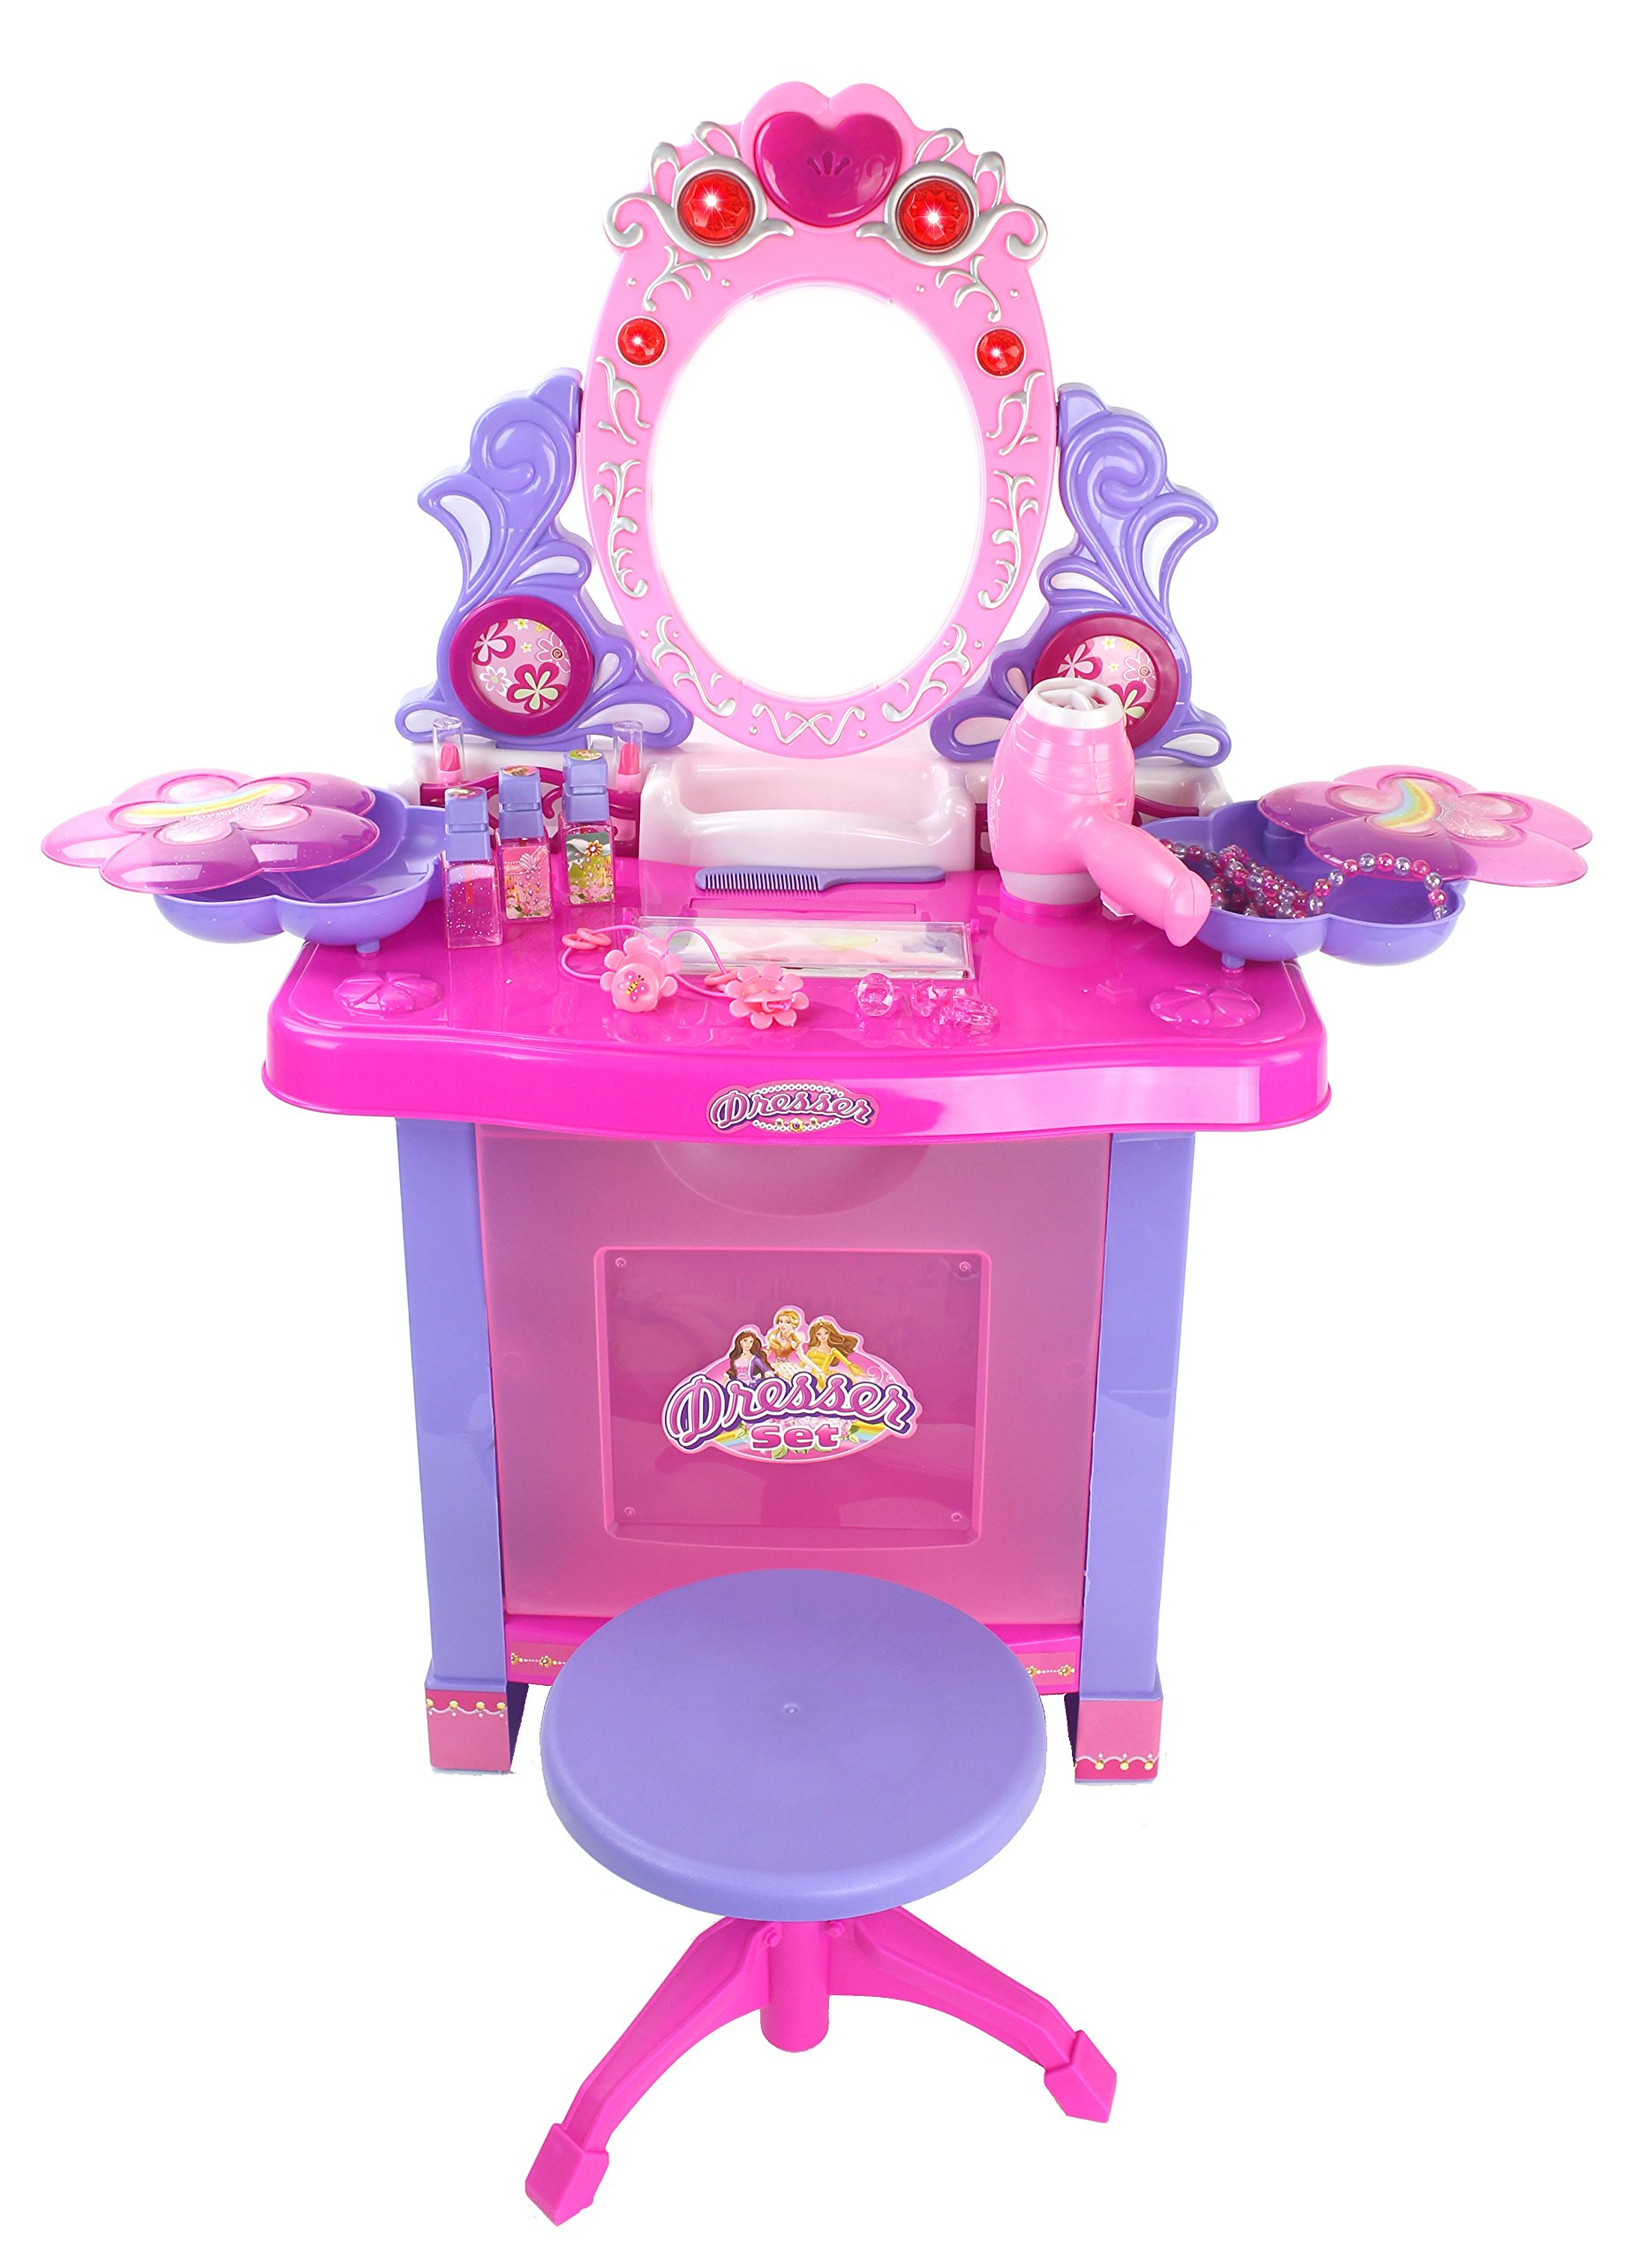 Battery Operated Princess Vanity Mirror Dresser Playset w/ Lights, Opening Dresser, Chair Stool, Sounds & Jewelry Accessories by Velocity Toys